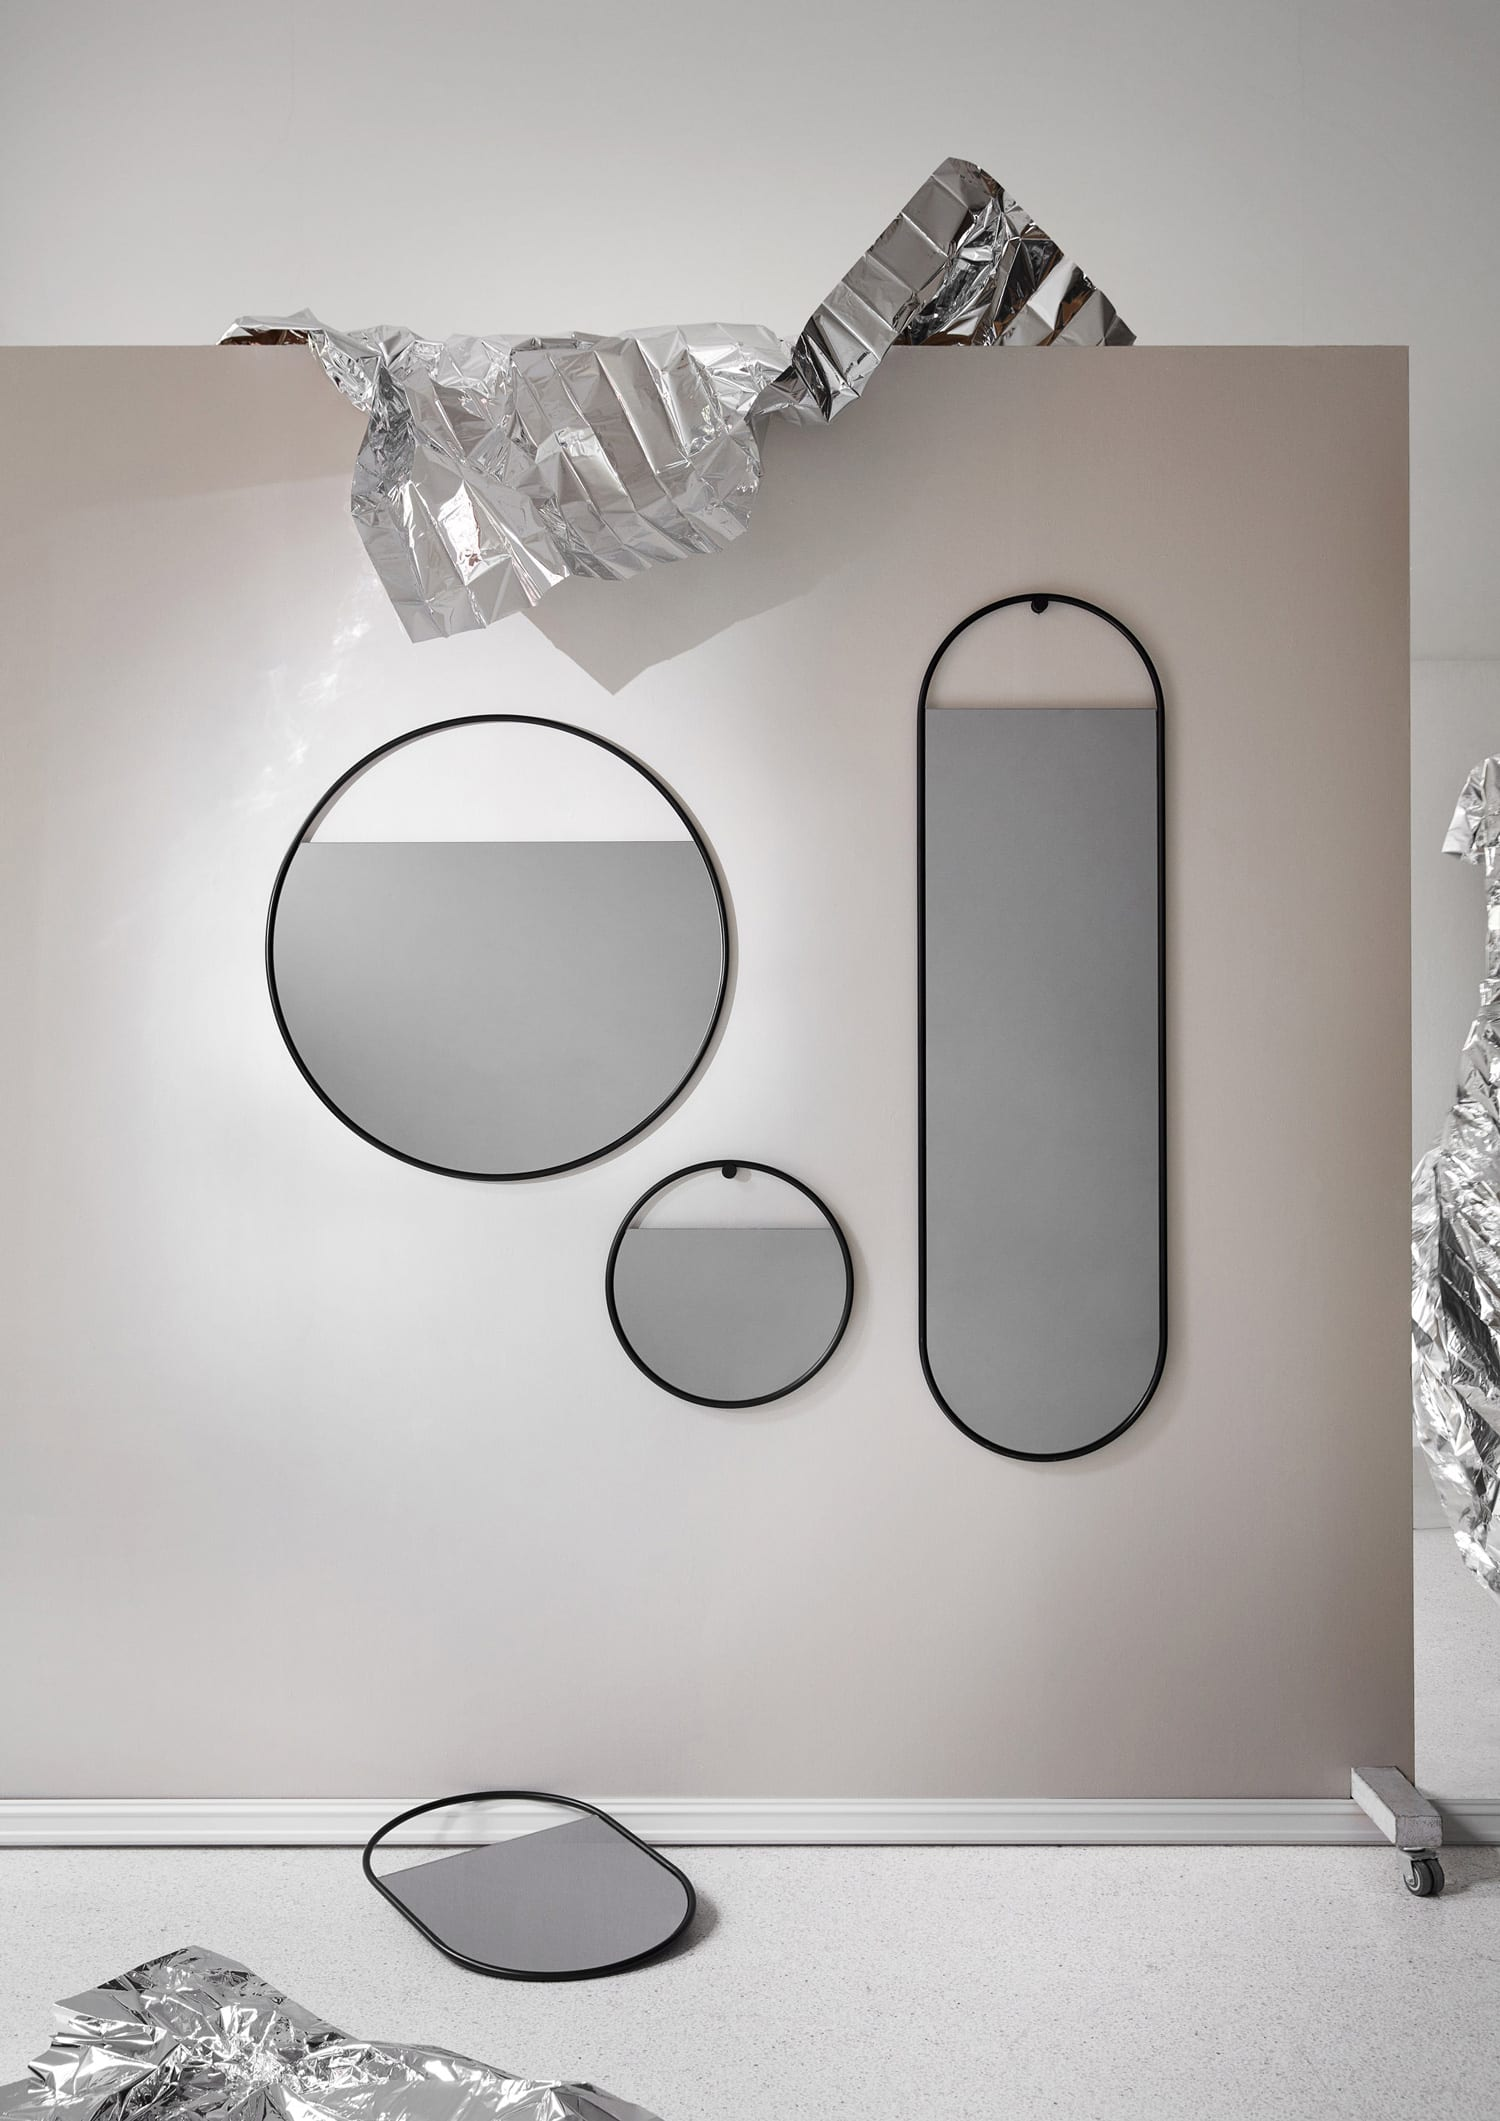 Peek Wall Mirror by Elina Ulvio for Northern at Imm Cologne 2019   Yellowtrace